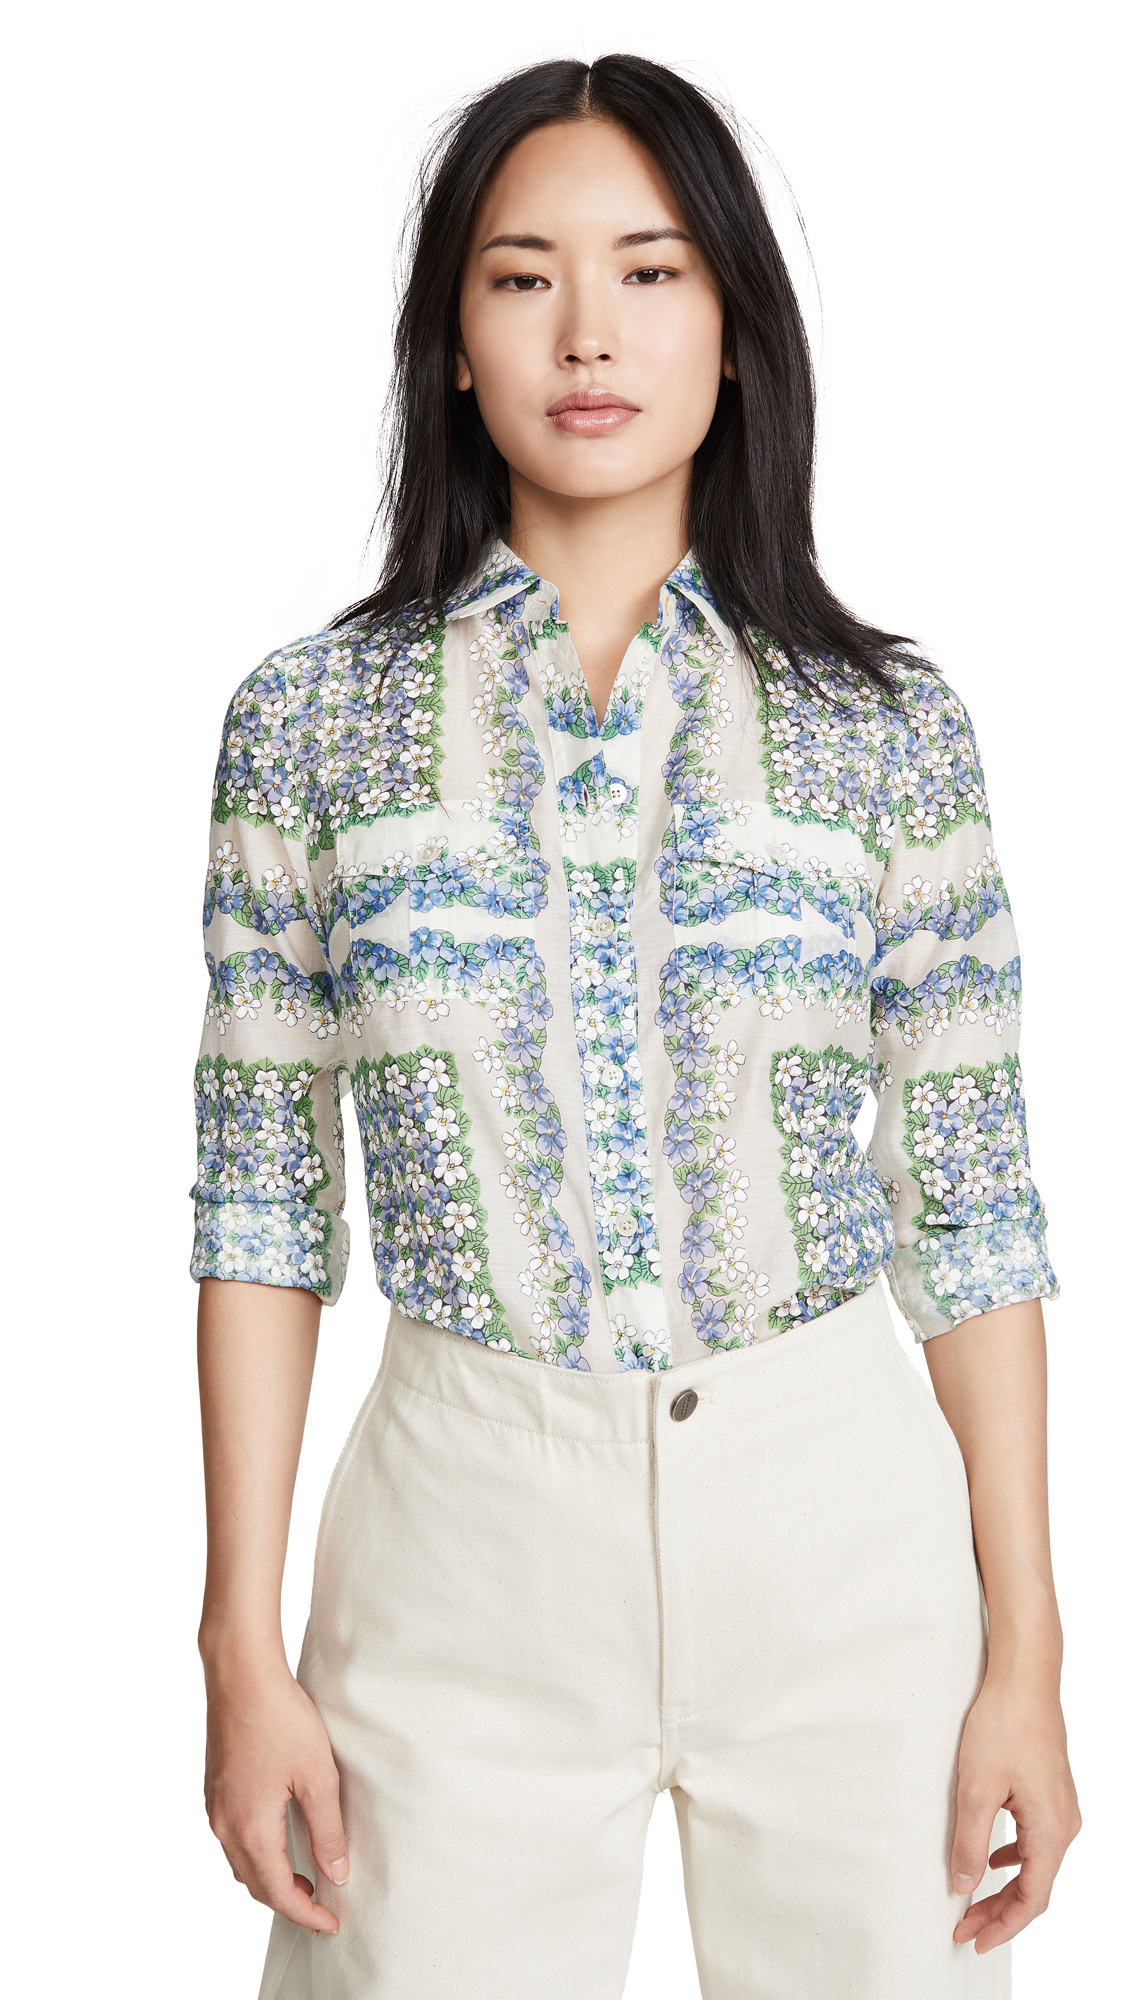 Tory Burch Printed Cotton Blouse - 30% Off Sale